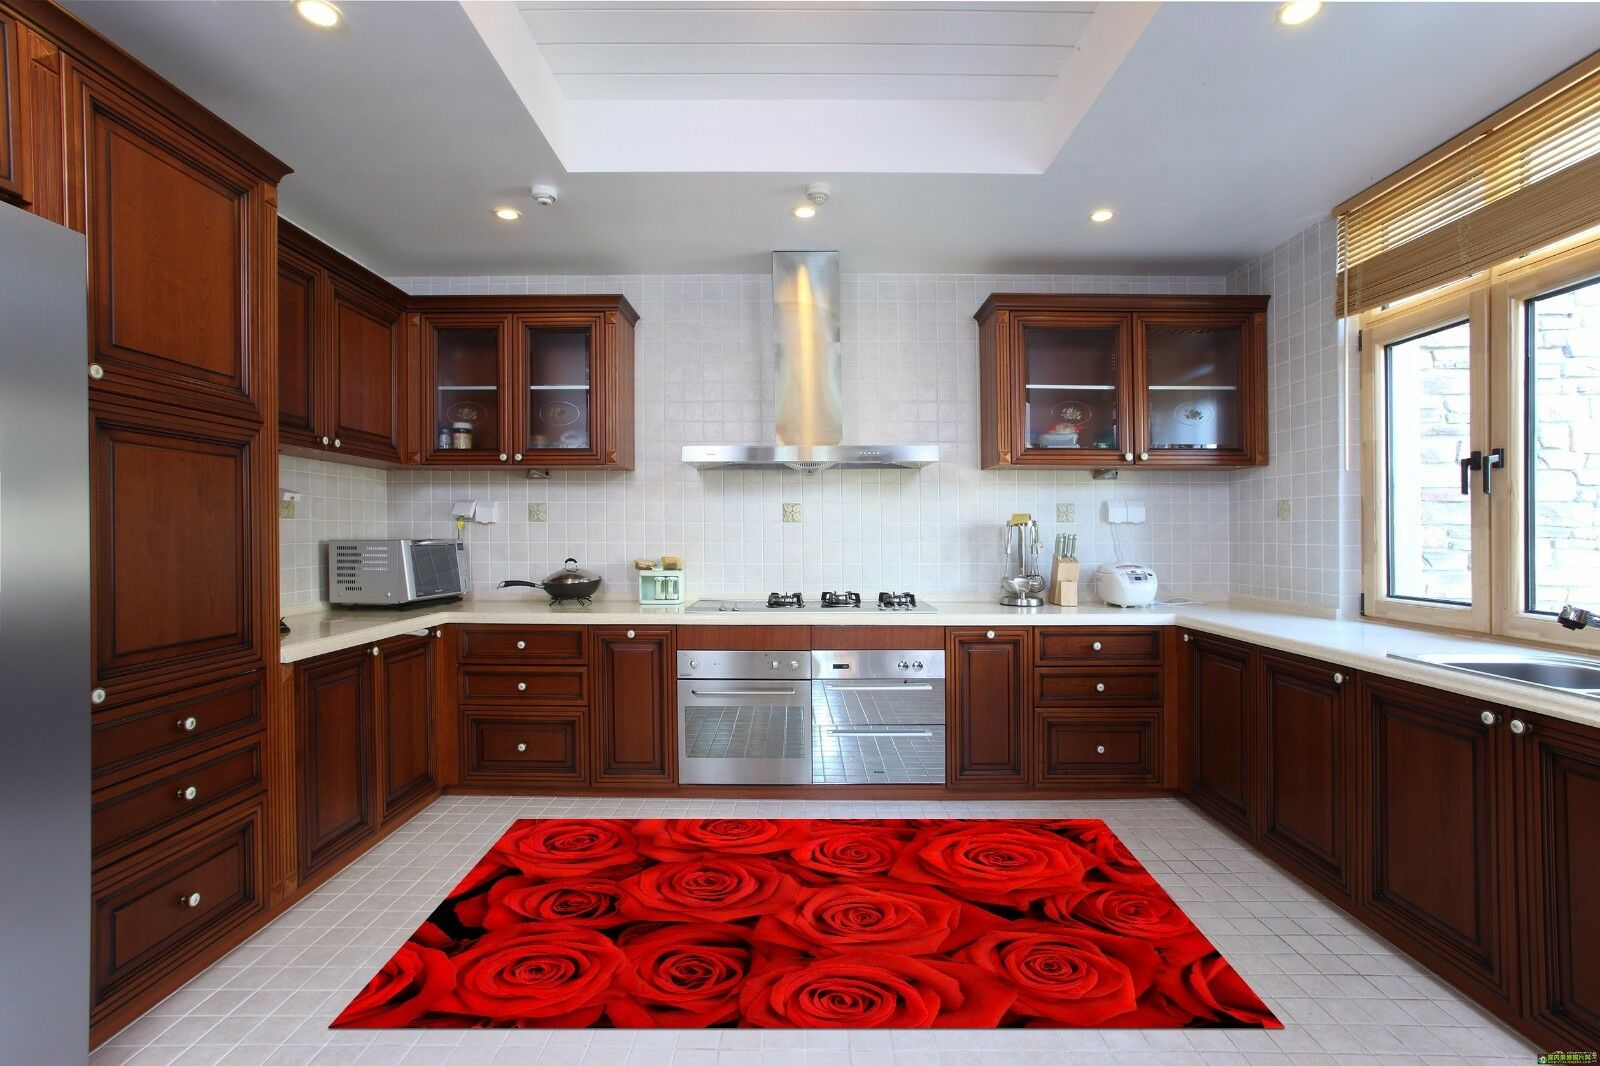 3D ROT Roses 939 Kitchen Mat Floor Murals Wall Print Wall AJ WALLPAPER UK Kyra